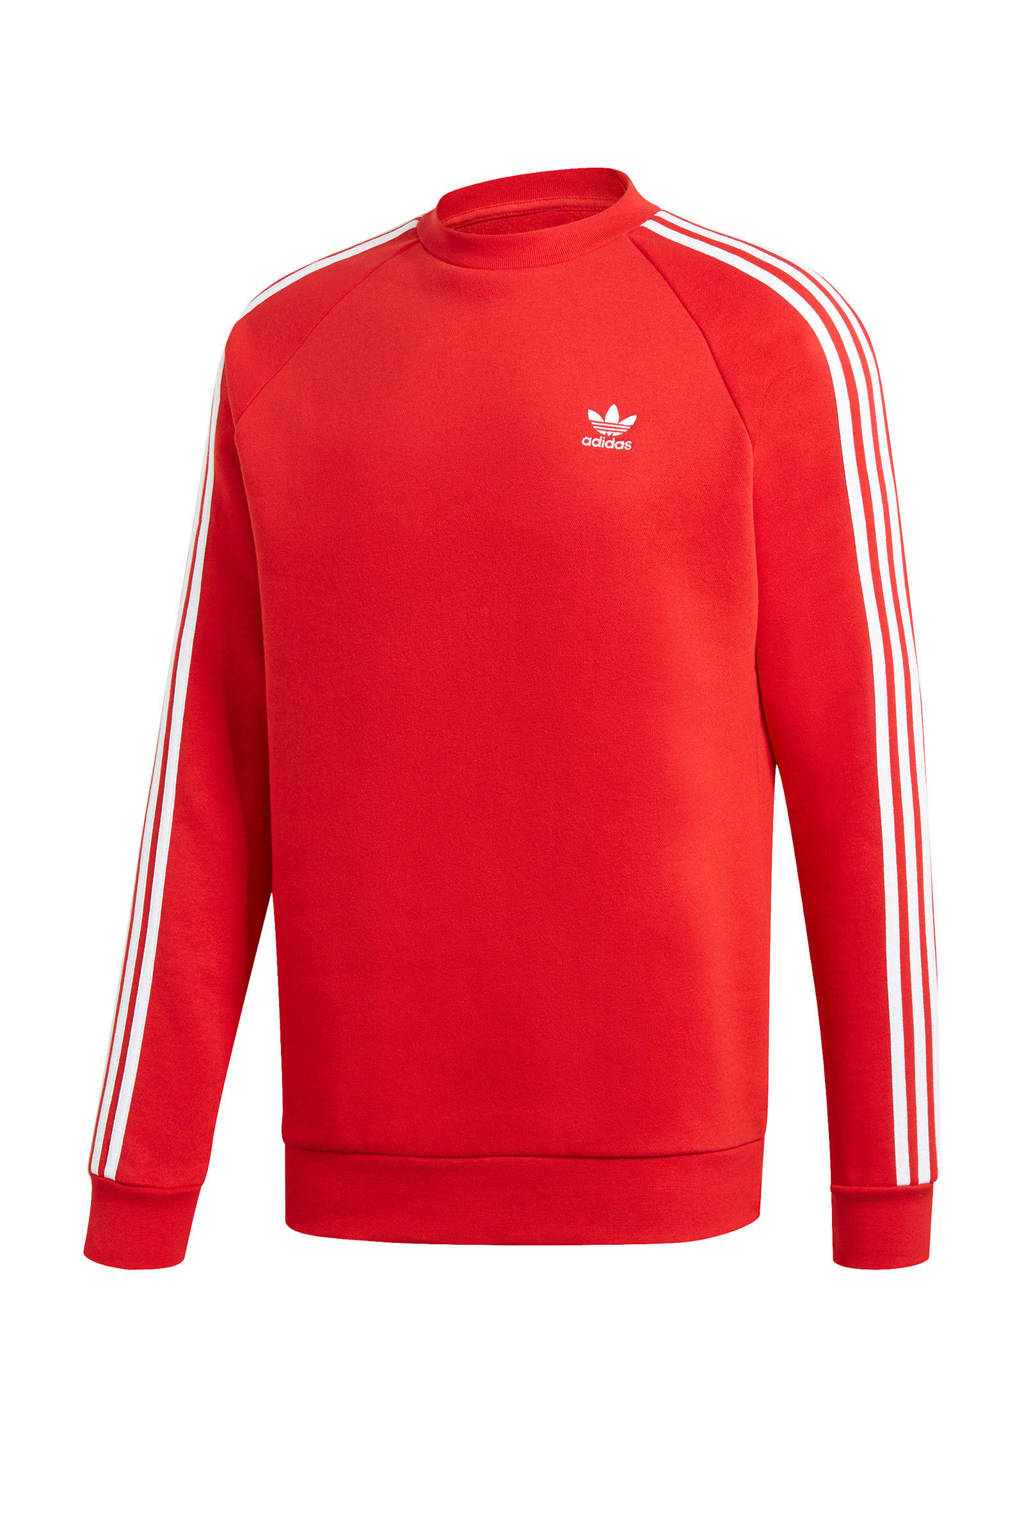 adidas Originals sweater rood, Rood